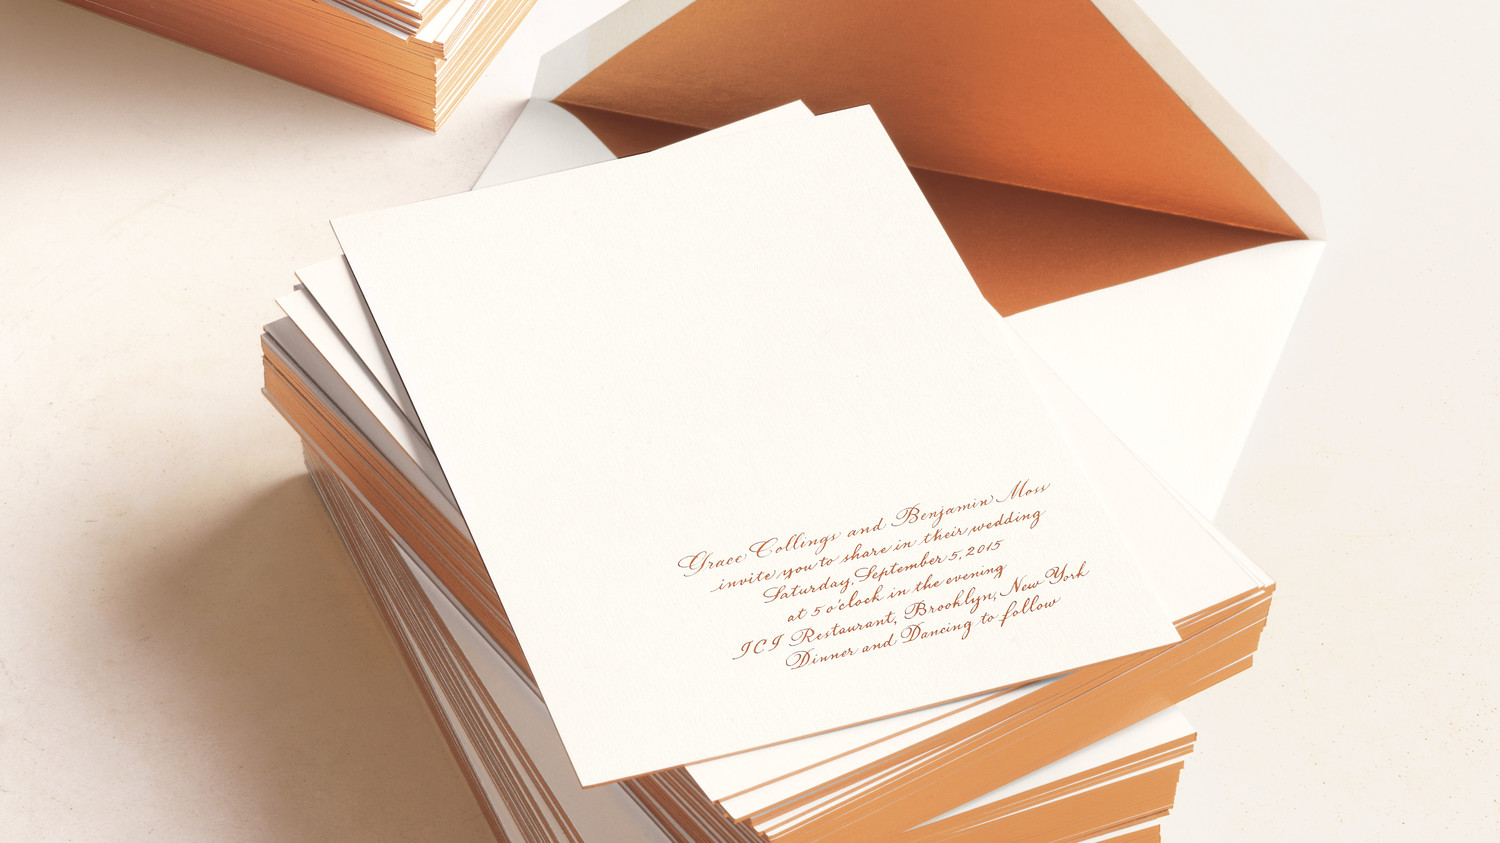 When To Mail Wedding Invitations: 10 Things You Should Know Before Addressing, Assembling